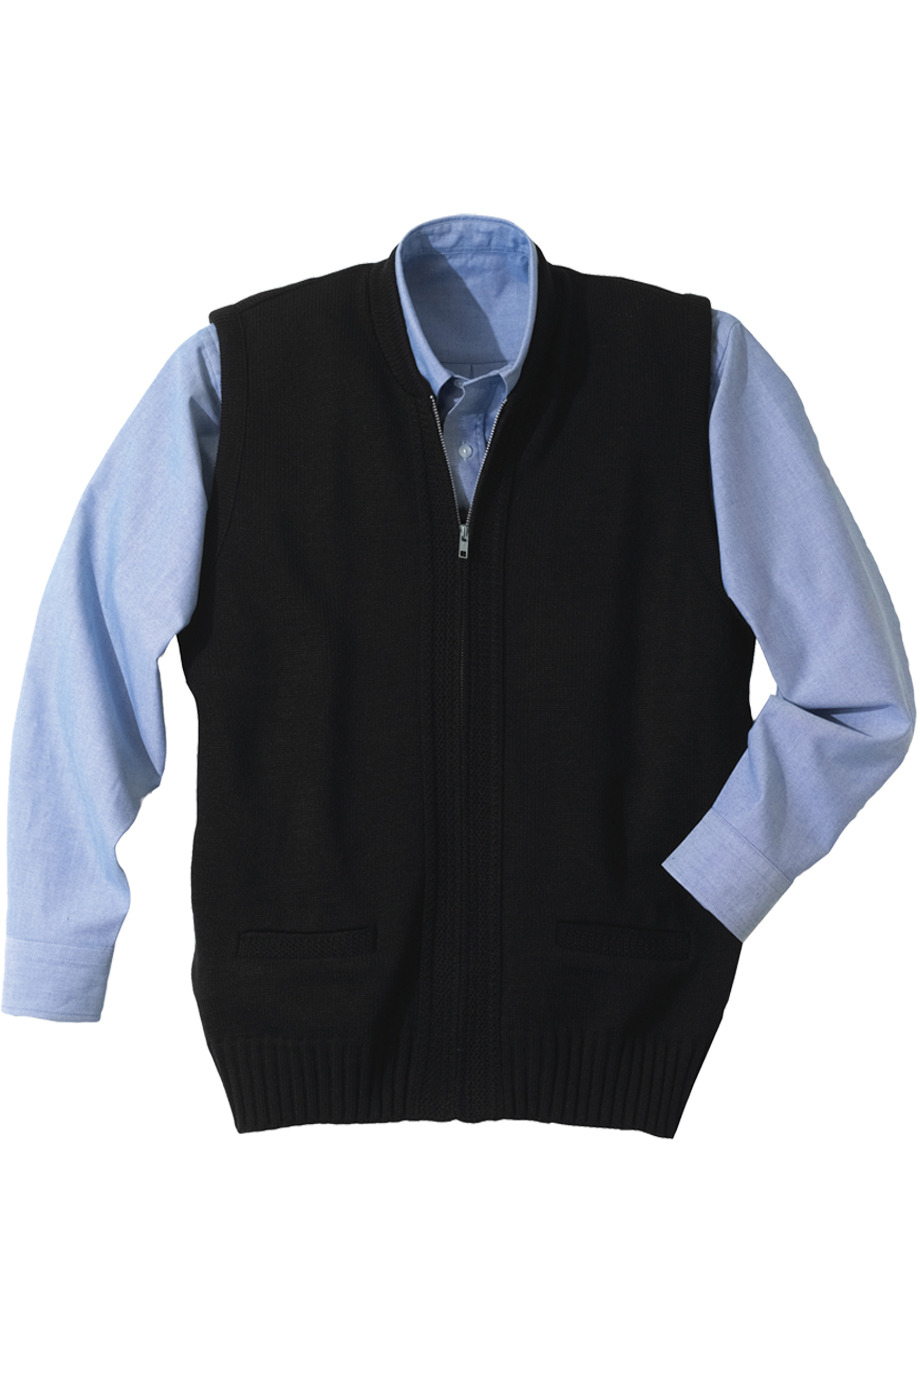 Wholesale Cotton Navy Sweater Vest - from $12.49